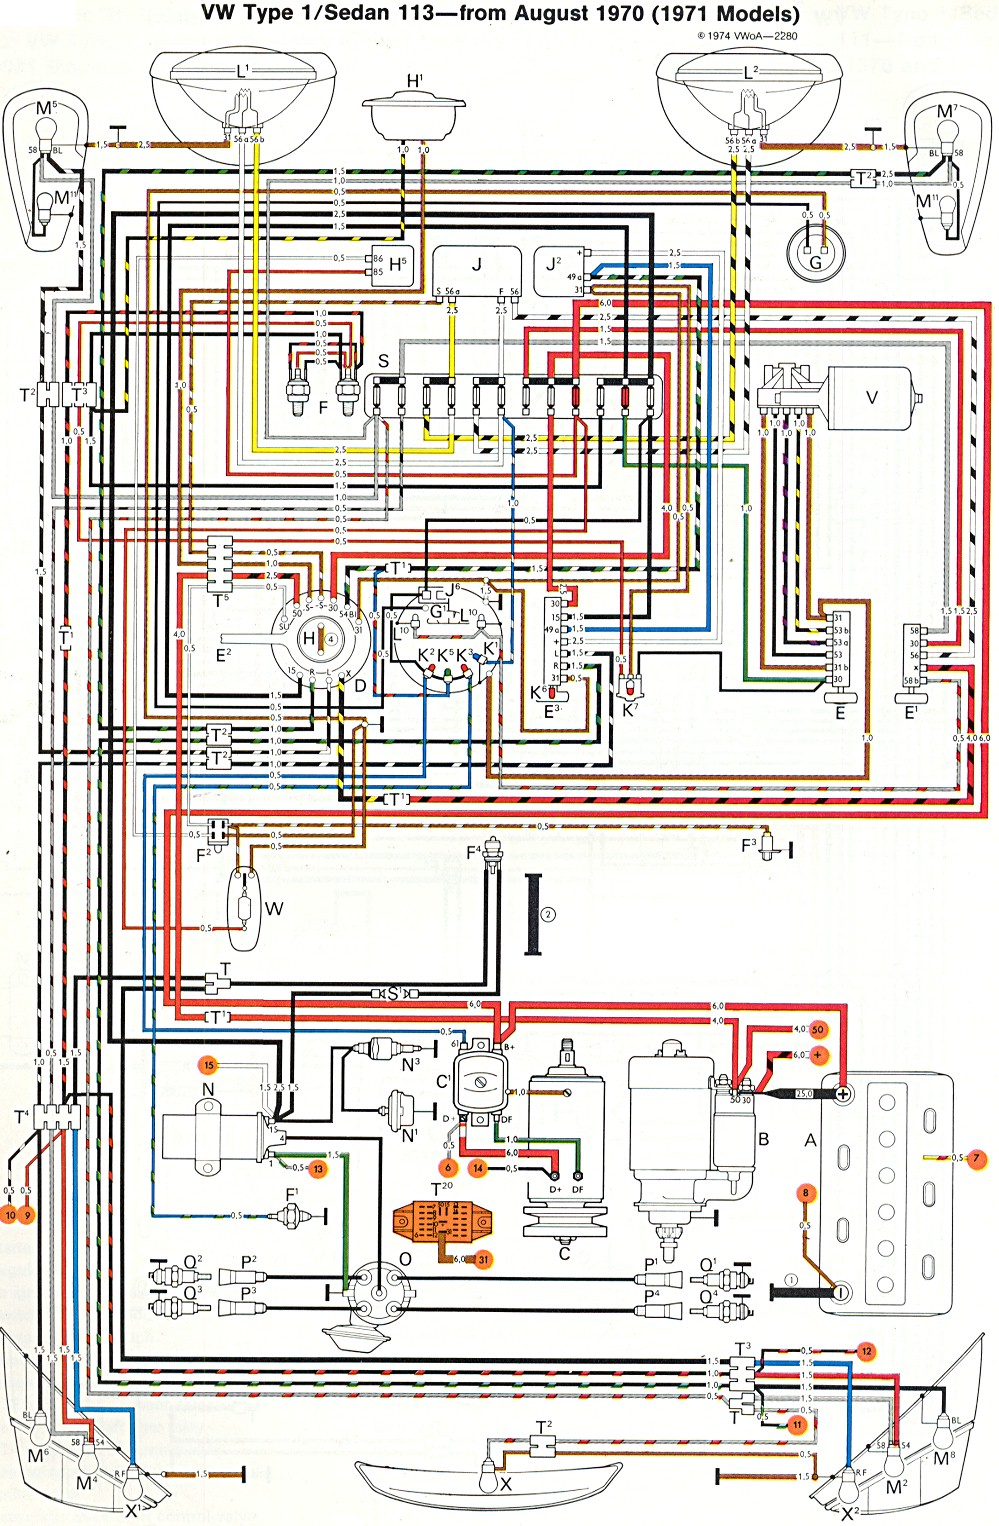 1971 Super Beetle Wiring Diagram - Schematics Wiring Diagrams •